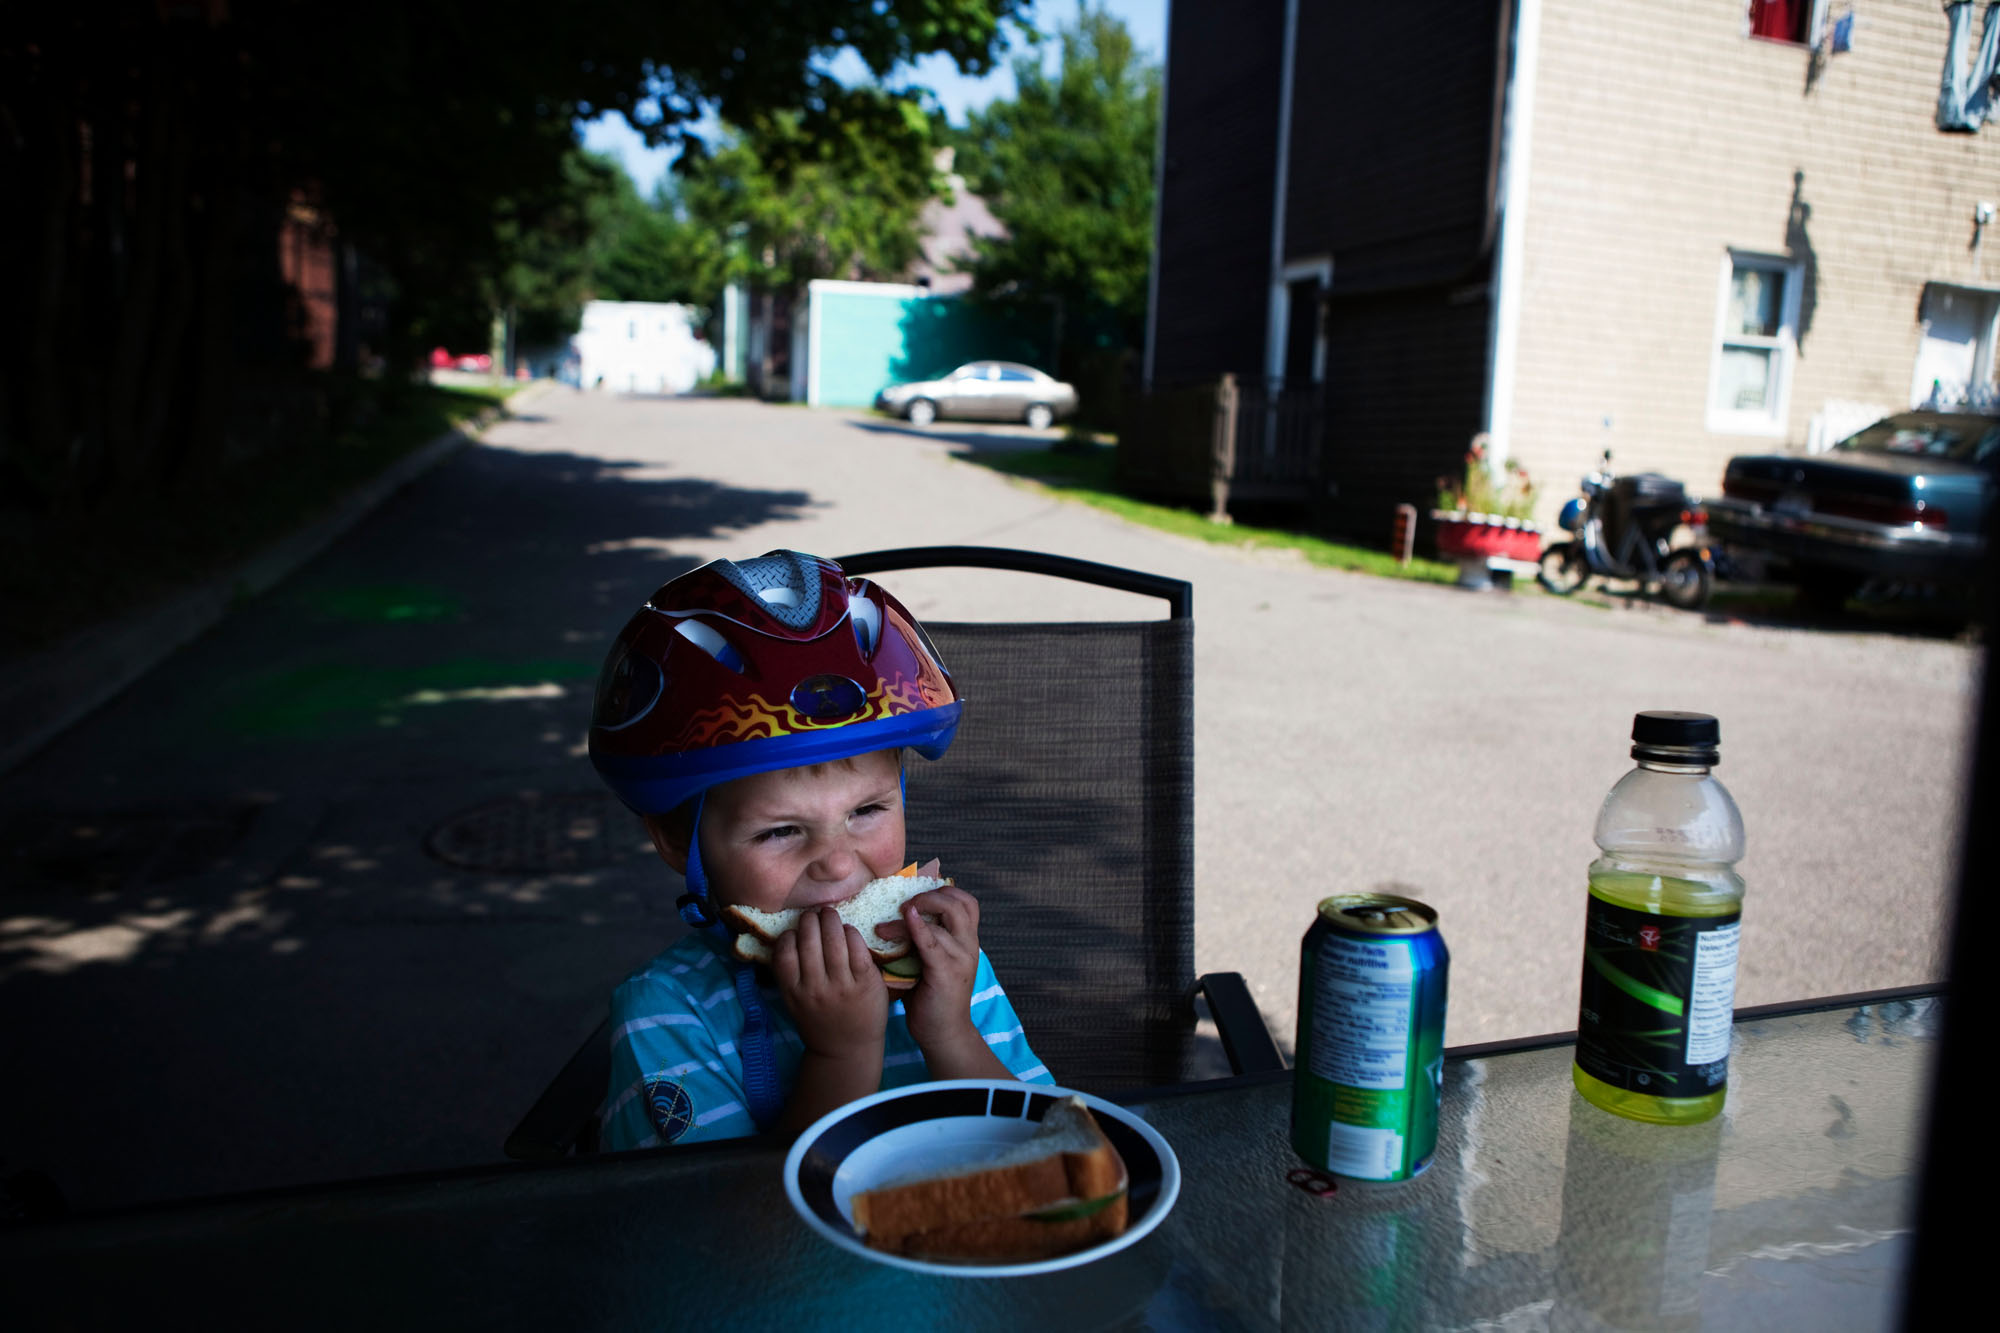 Dallas Kelly, 3, eats a sandwich outside of his home. Dallas and his mother, Melissa Kelly, recently moved to Saint John from Edmonton so that she could be closer to her daughter. {quote}I don't really care for the neighbourhood,{quote} says Melissa. {quote}It looks like garbage disposal hasn't been here in a while.{quote}